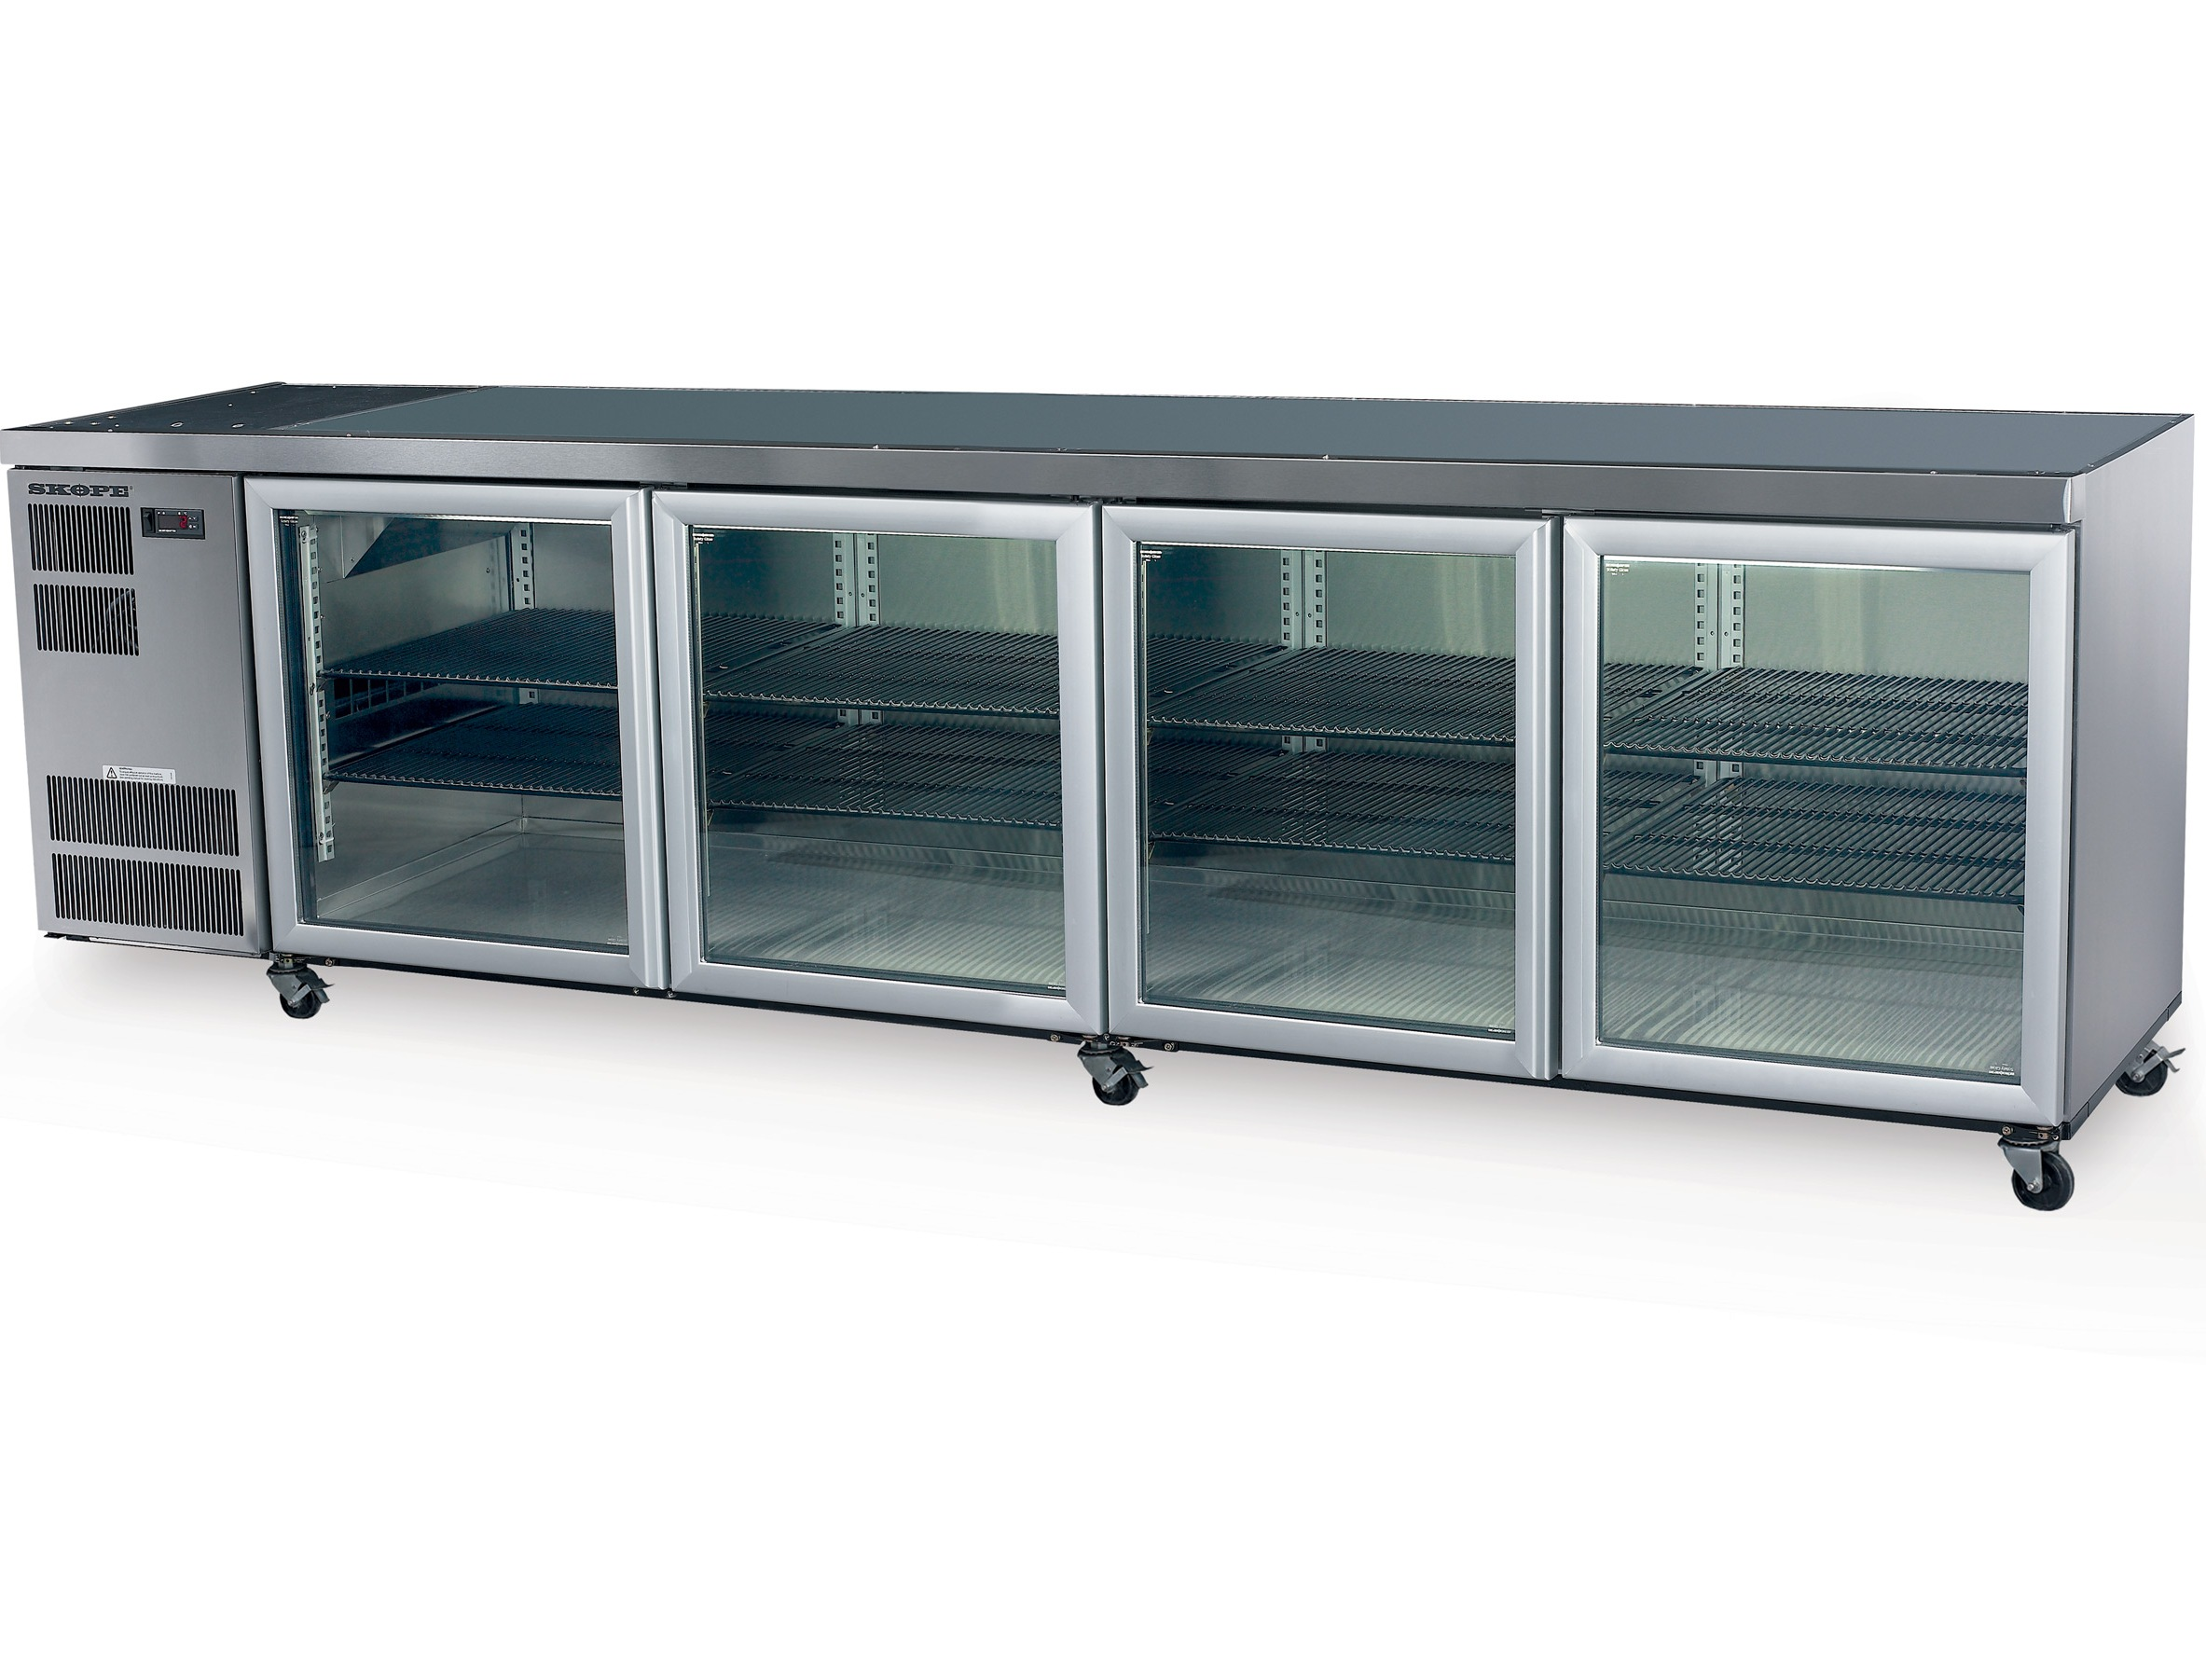 Skope CL800-4SW U/C Fridge